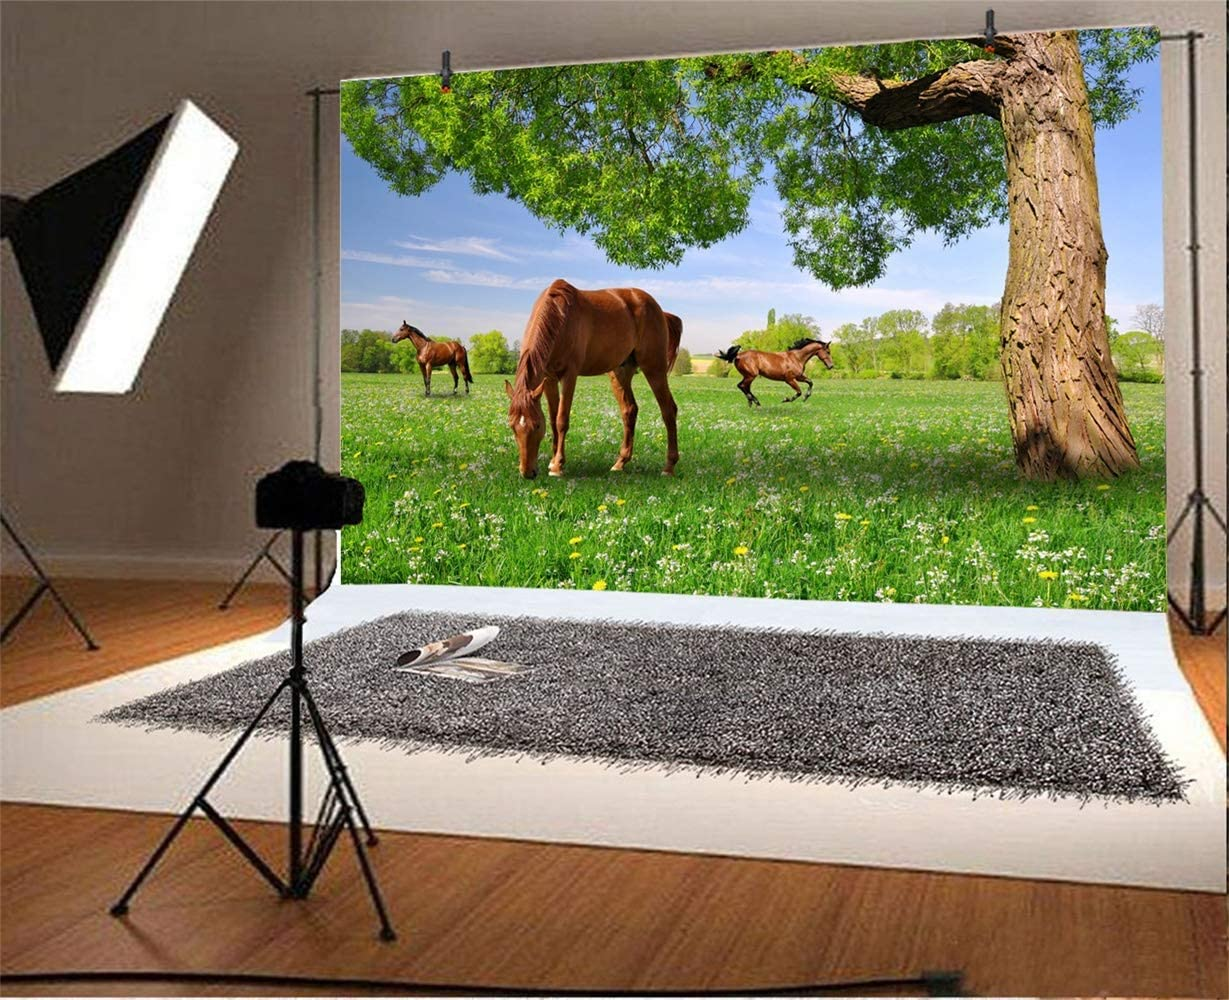 7x5ft Spring Wild Landscape Backdrop Natural Scenic Polyester Photography Background Horses Tree Green Grassland with Florets Clear Weather Post Card Wedding Photo Studio Prop